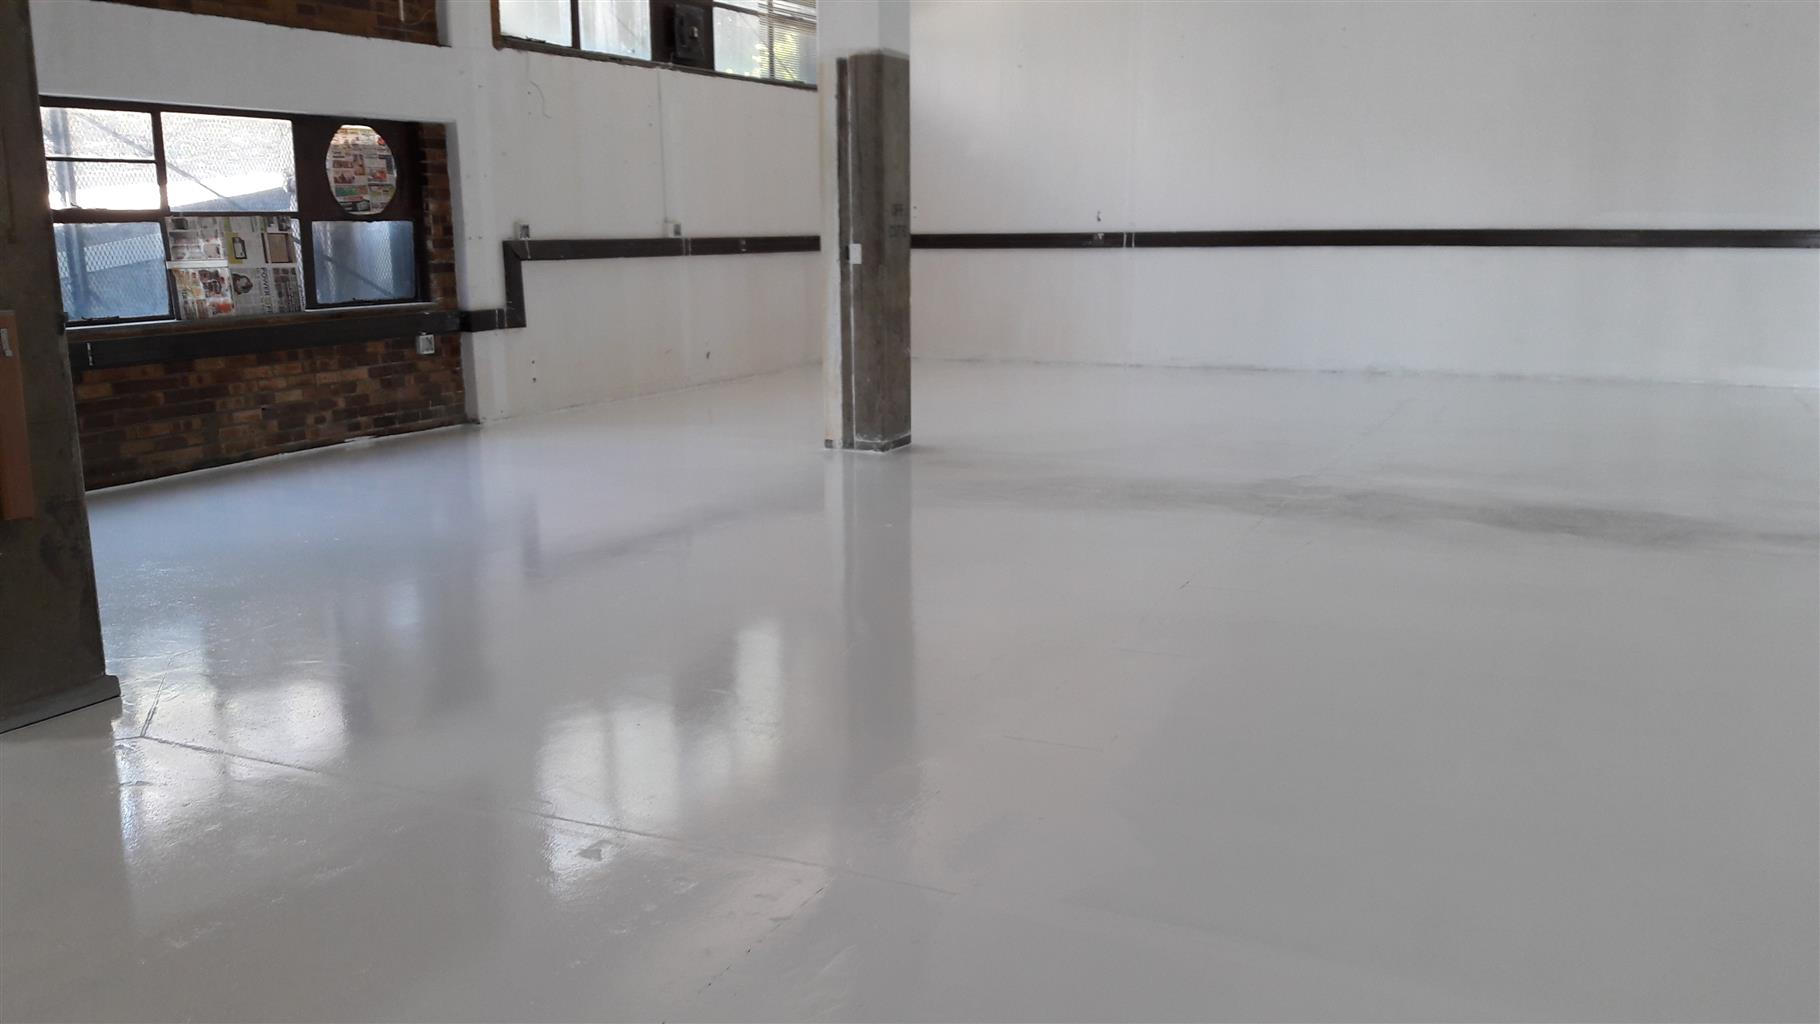 flooring polyurethane floor systems coating our range based offer waterborne broad to suitable with they moretons moderate traffic services level water floors are blackbutt an high sanding for hamilton applications timber coatings a impressively of